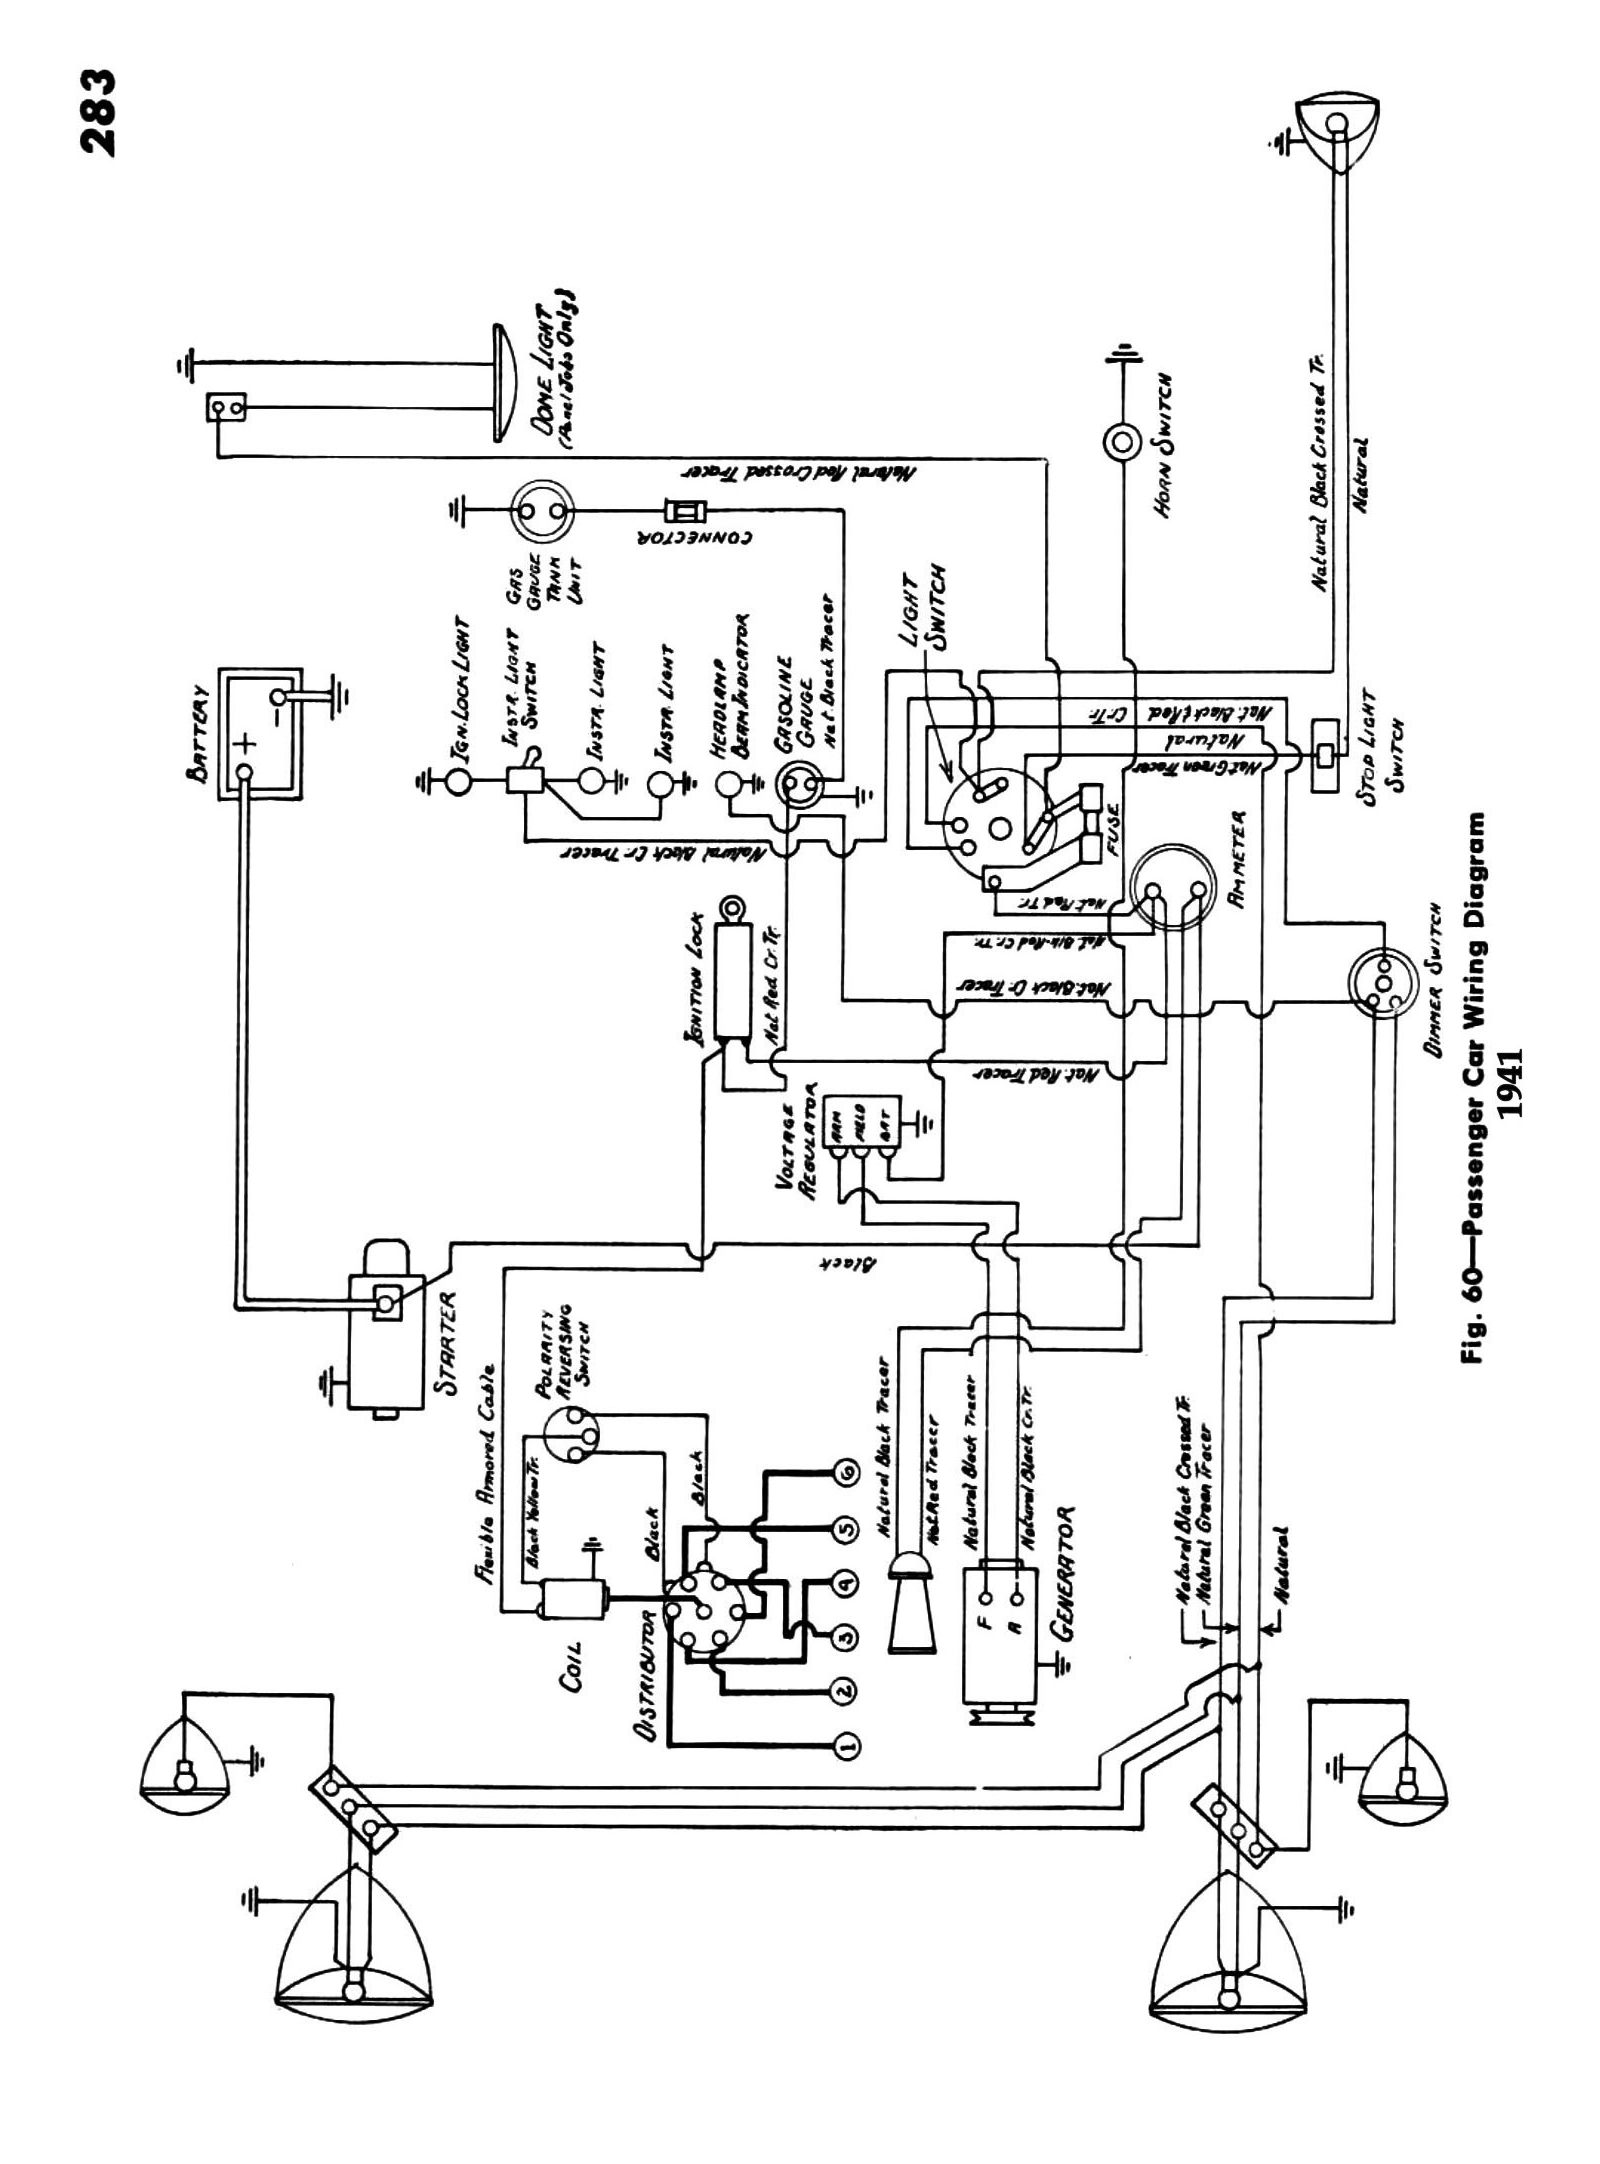 41csm283 chevy wiring diagrams chevy truck wiring diagram at eliteediting.co